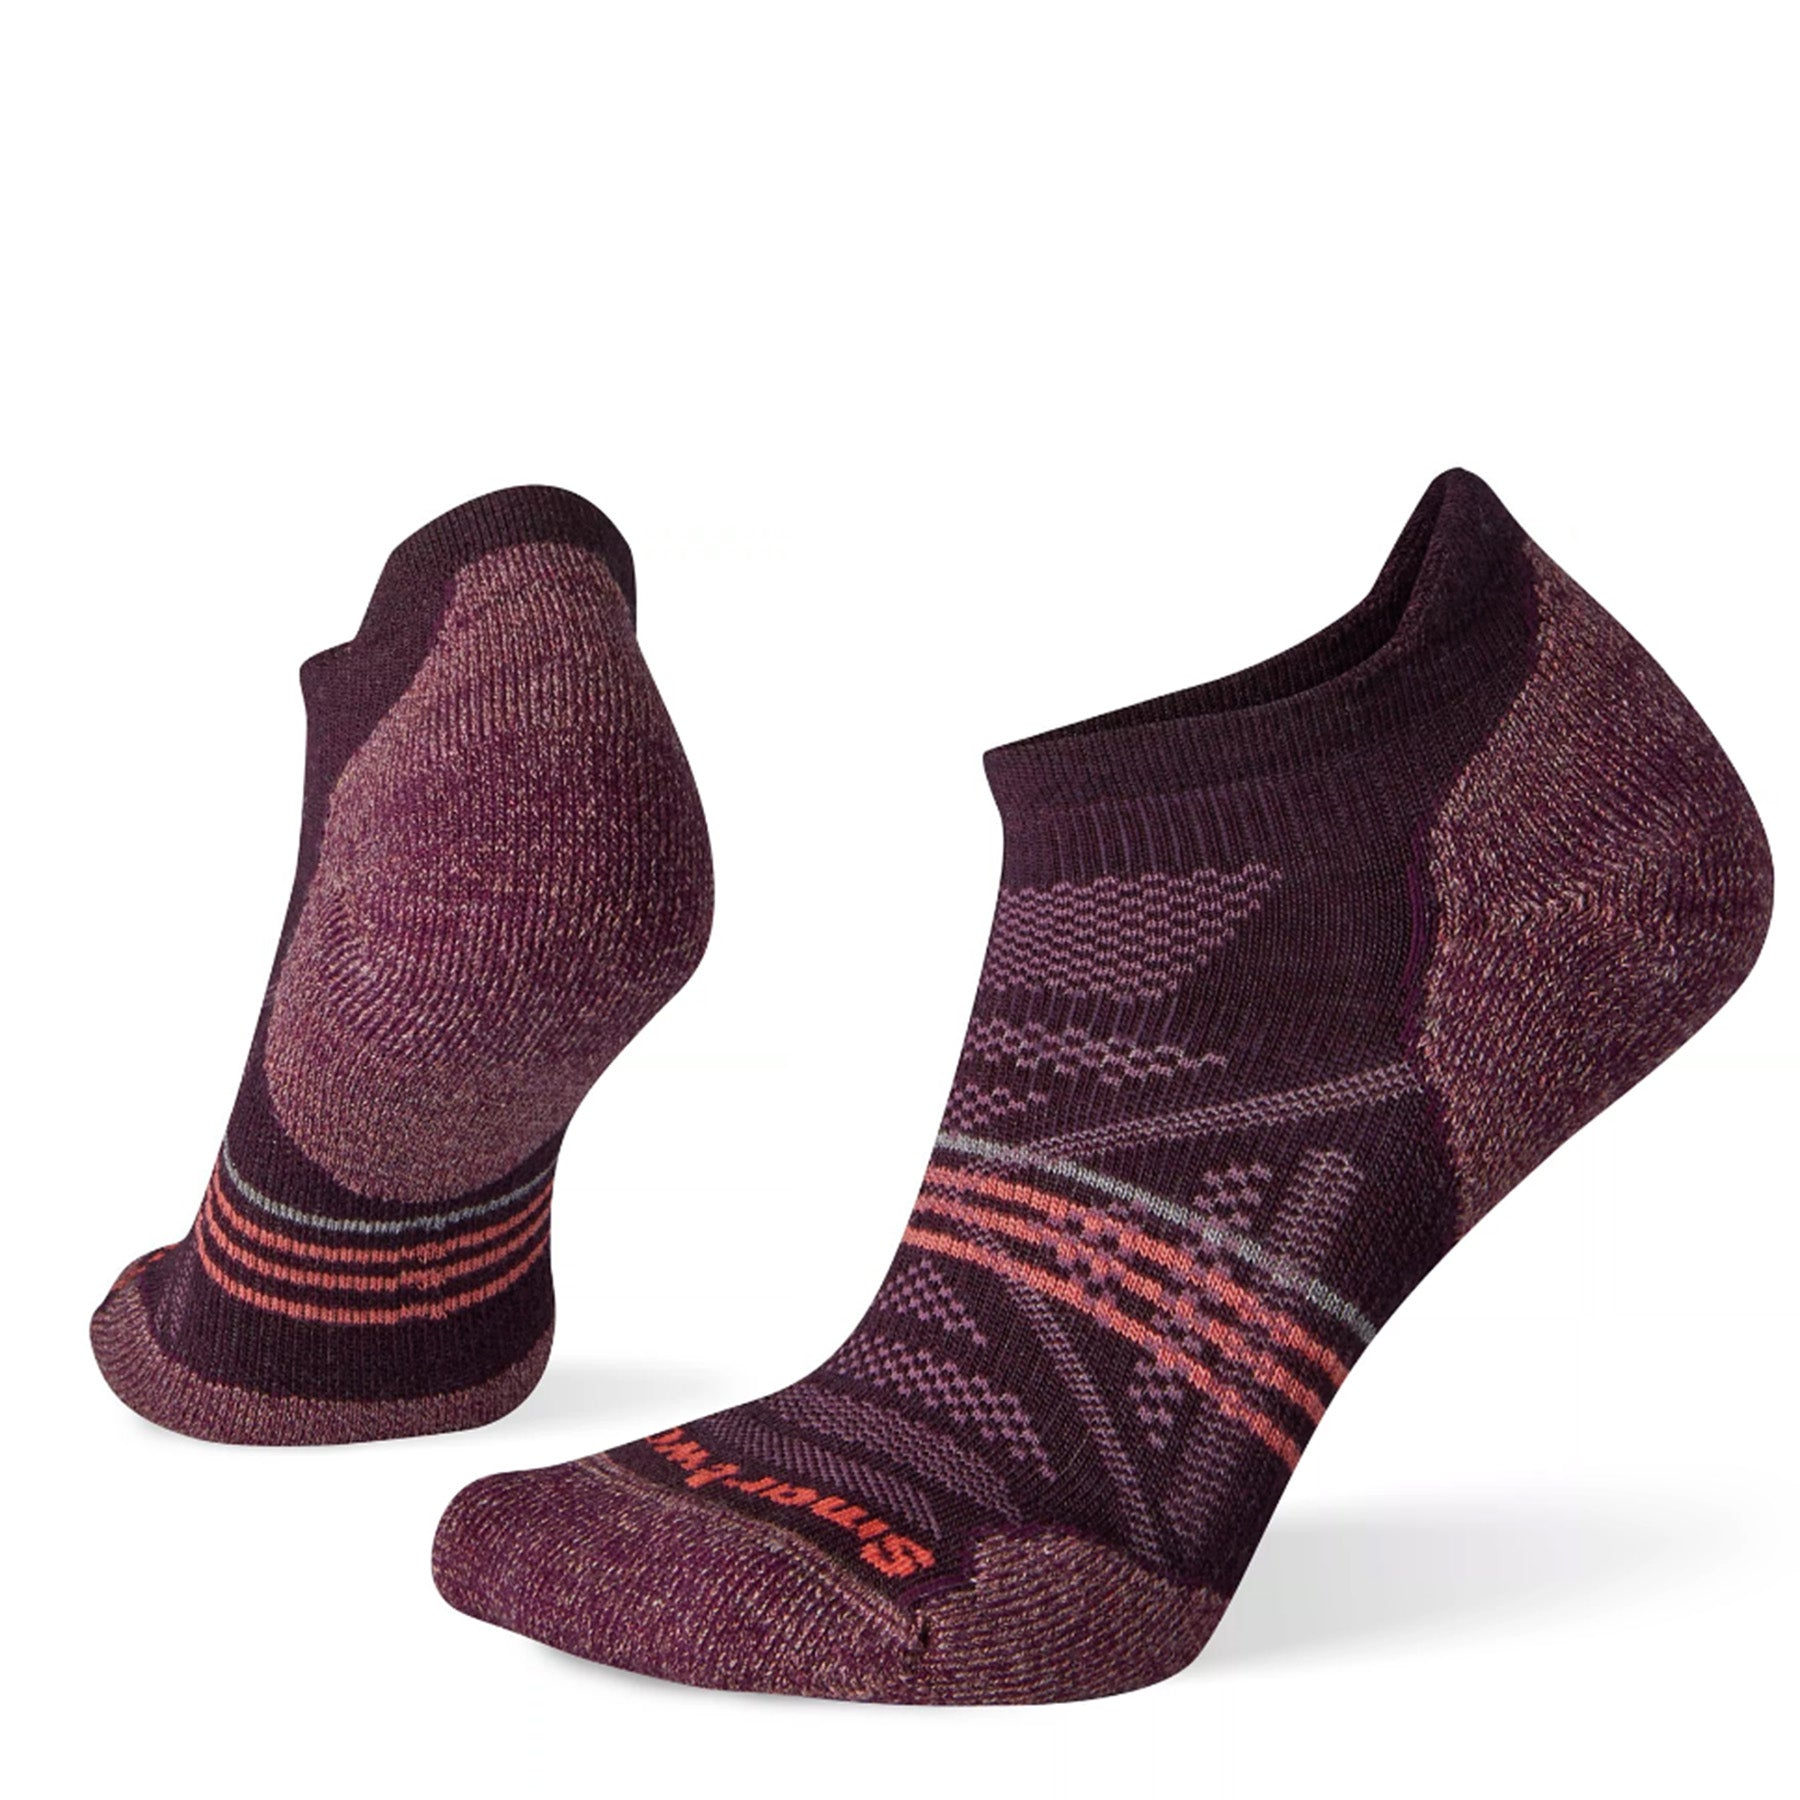 Smartwool Women's PhD® Outdoor Light Hiking Micro Socks